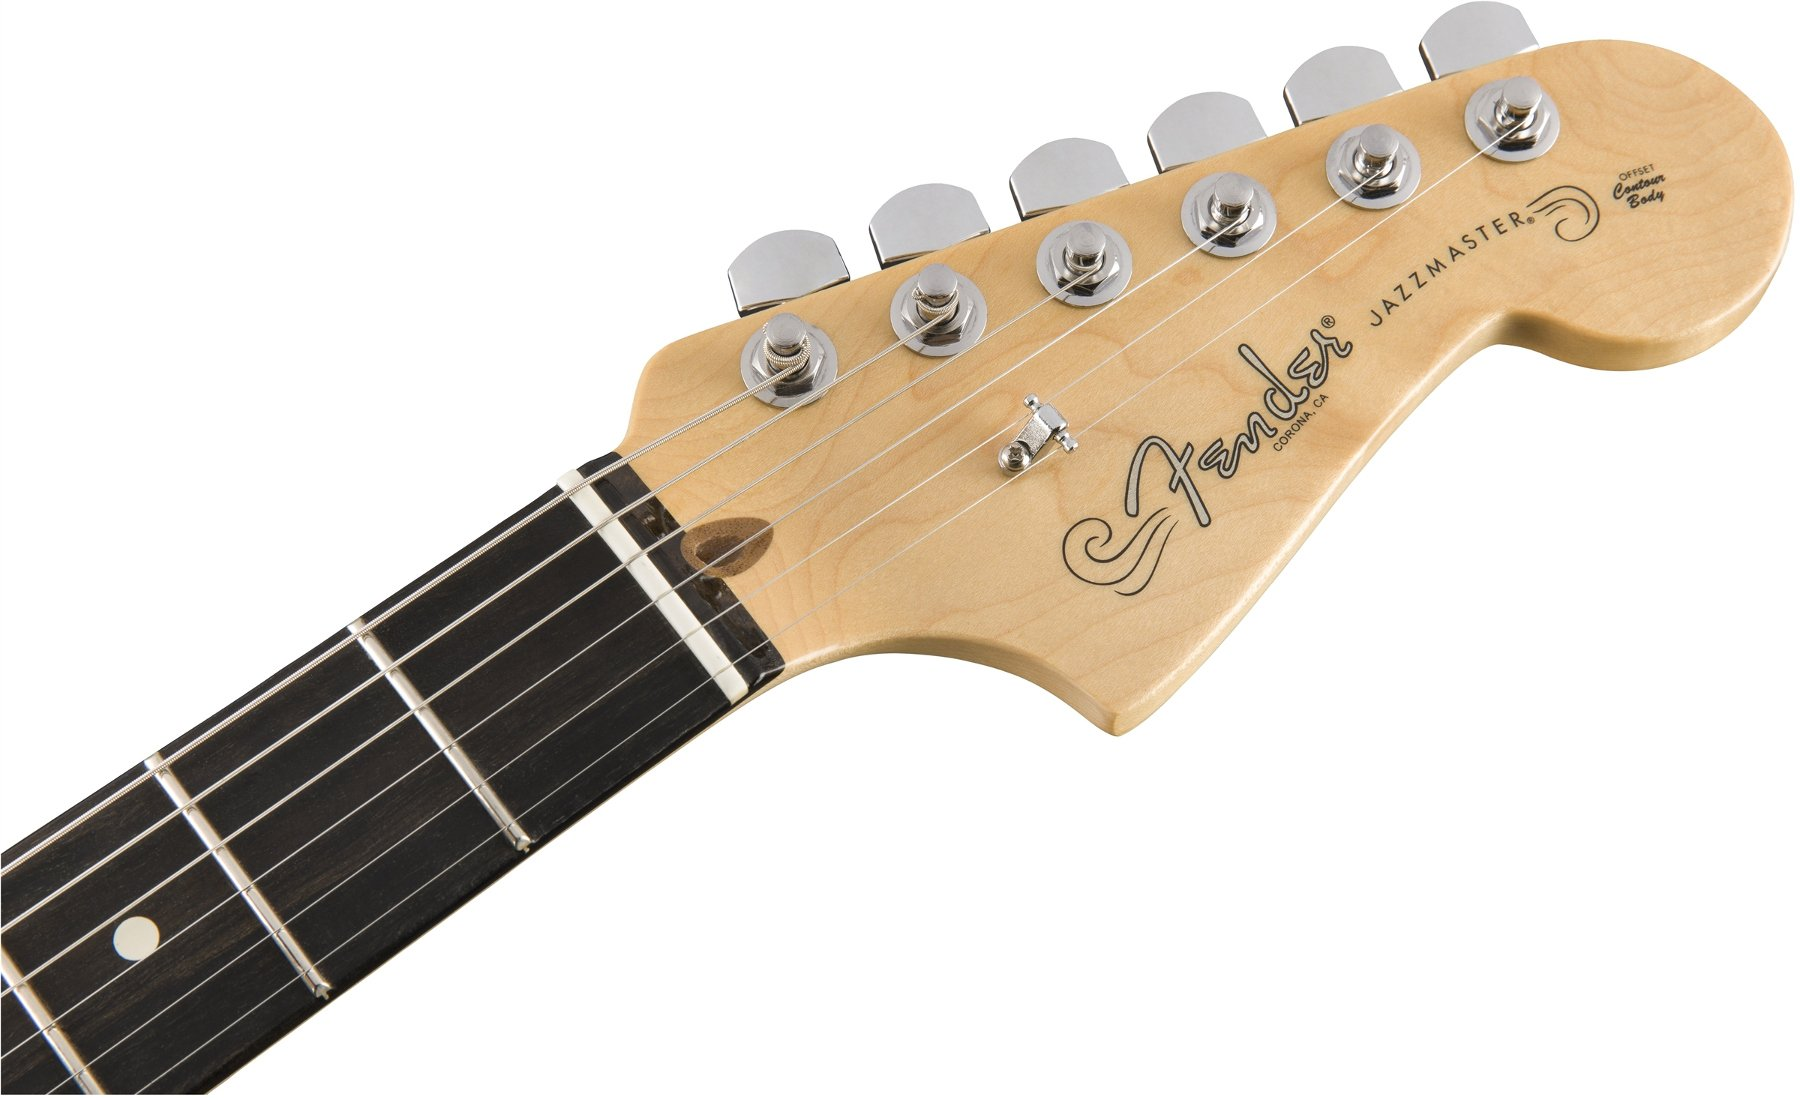 Limited Edition Electric Guitar, Silverburst Finish